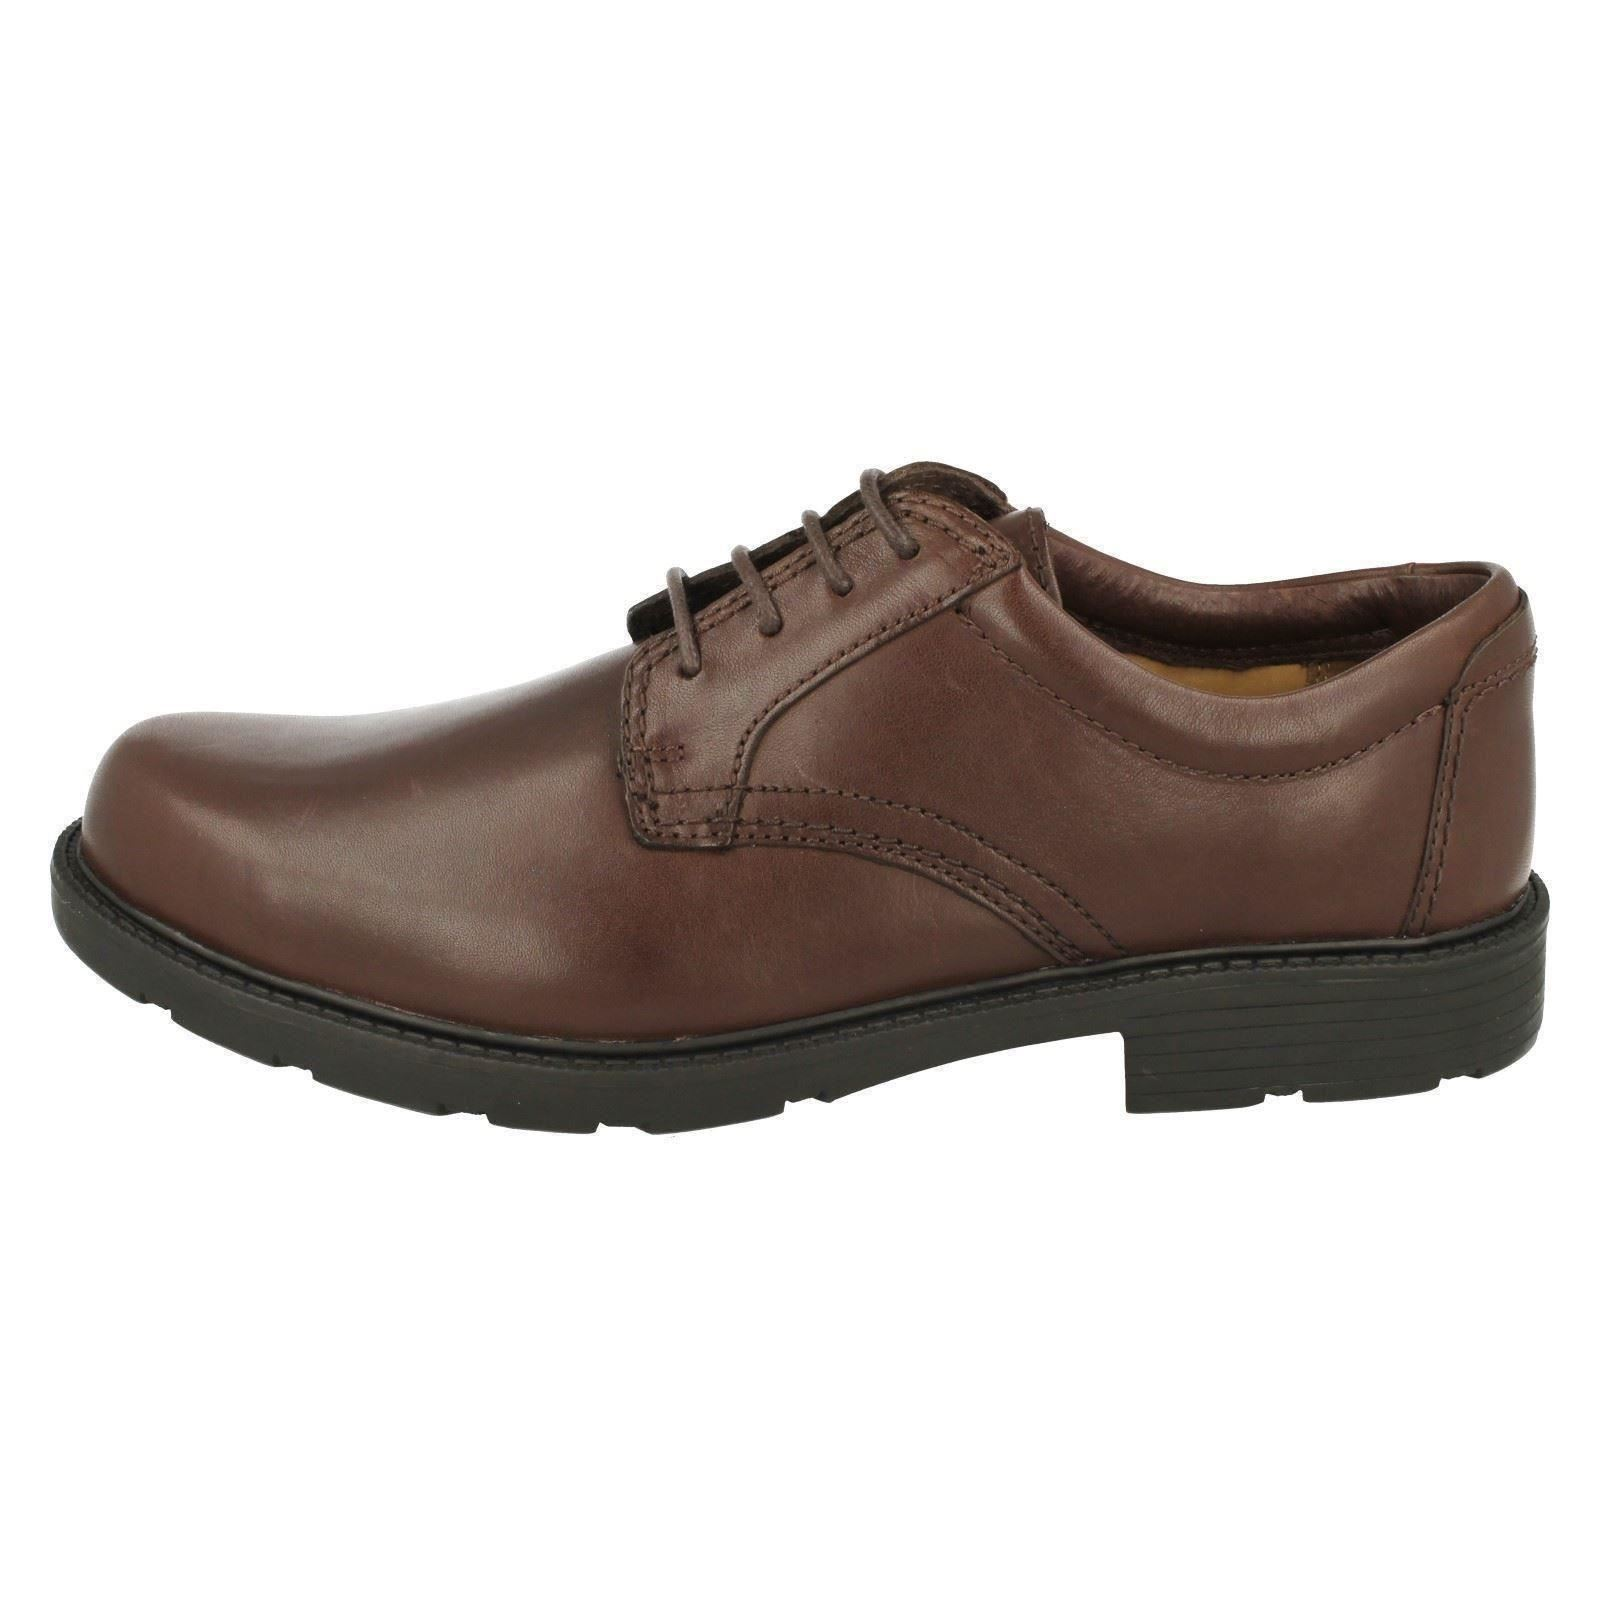 'Mens Clarks' Lace Up Shoes - Lair Watch